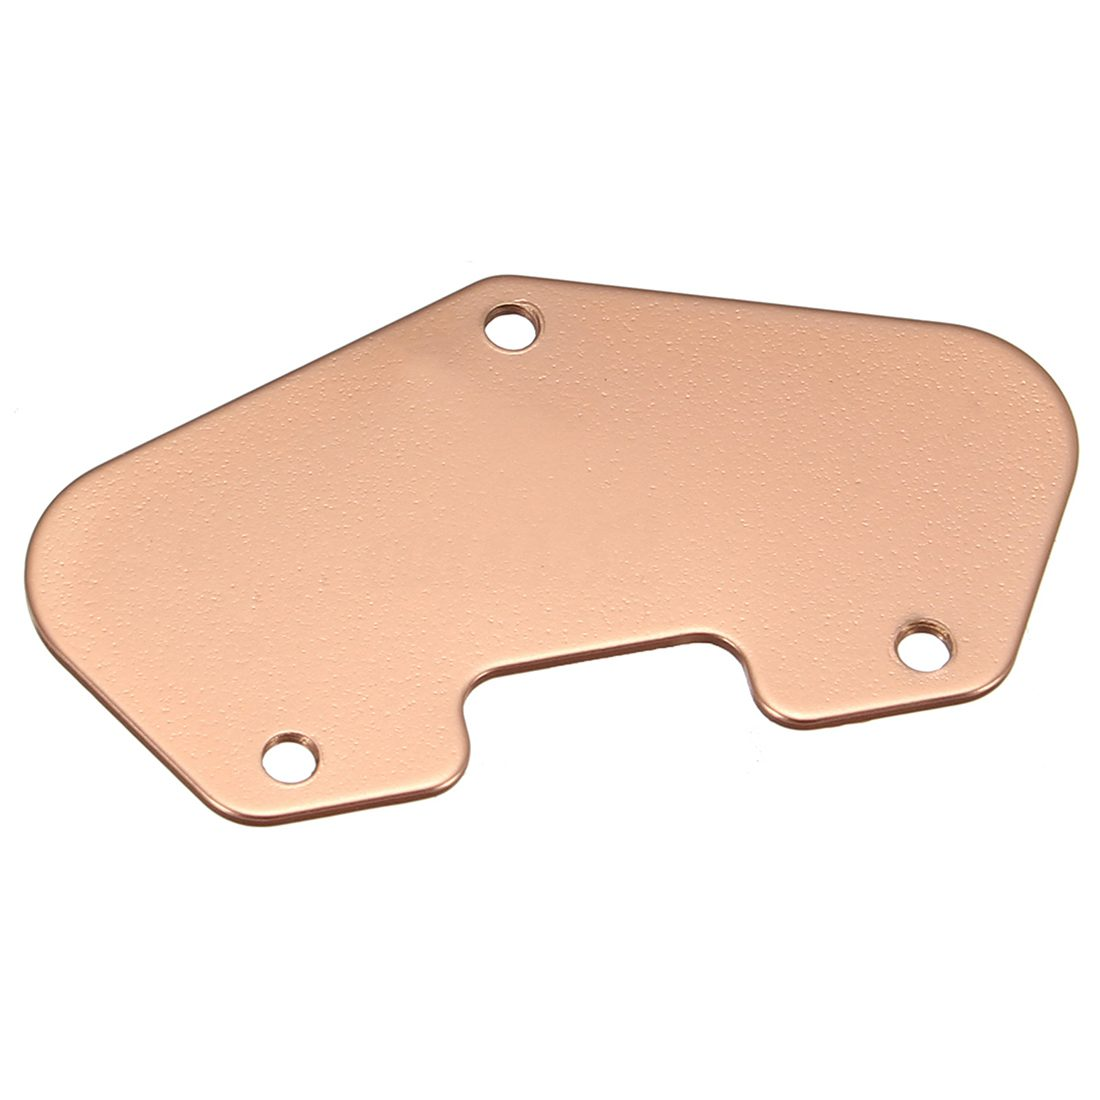 buy iron electric guitar pickup baseplate for tele strat copper clad from. Black Bedroom Furniture Sets. Home Design Ideas